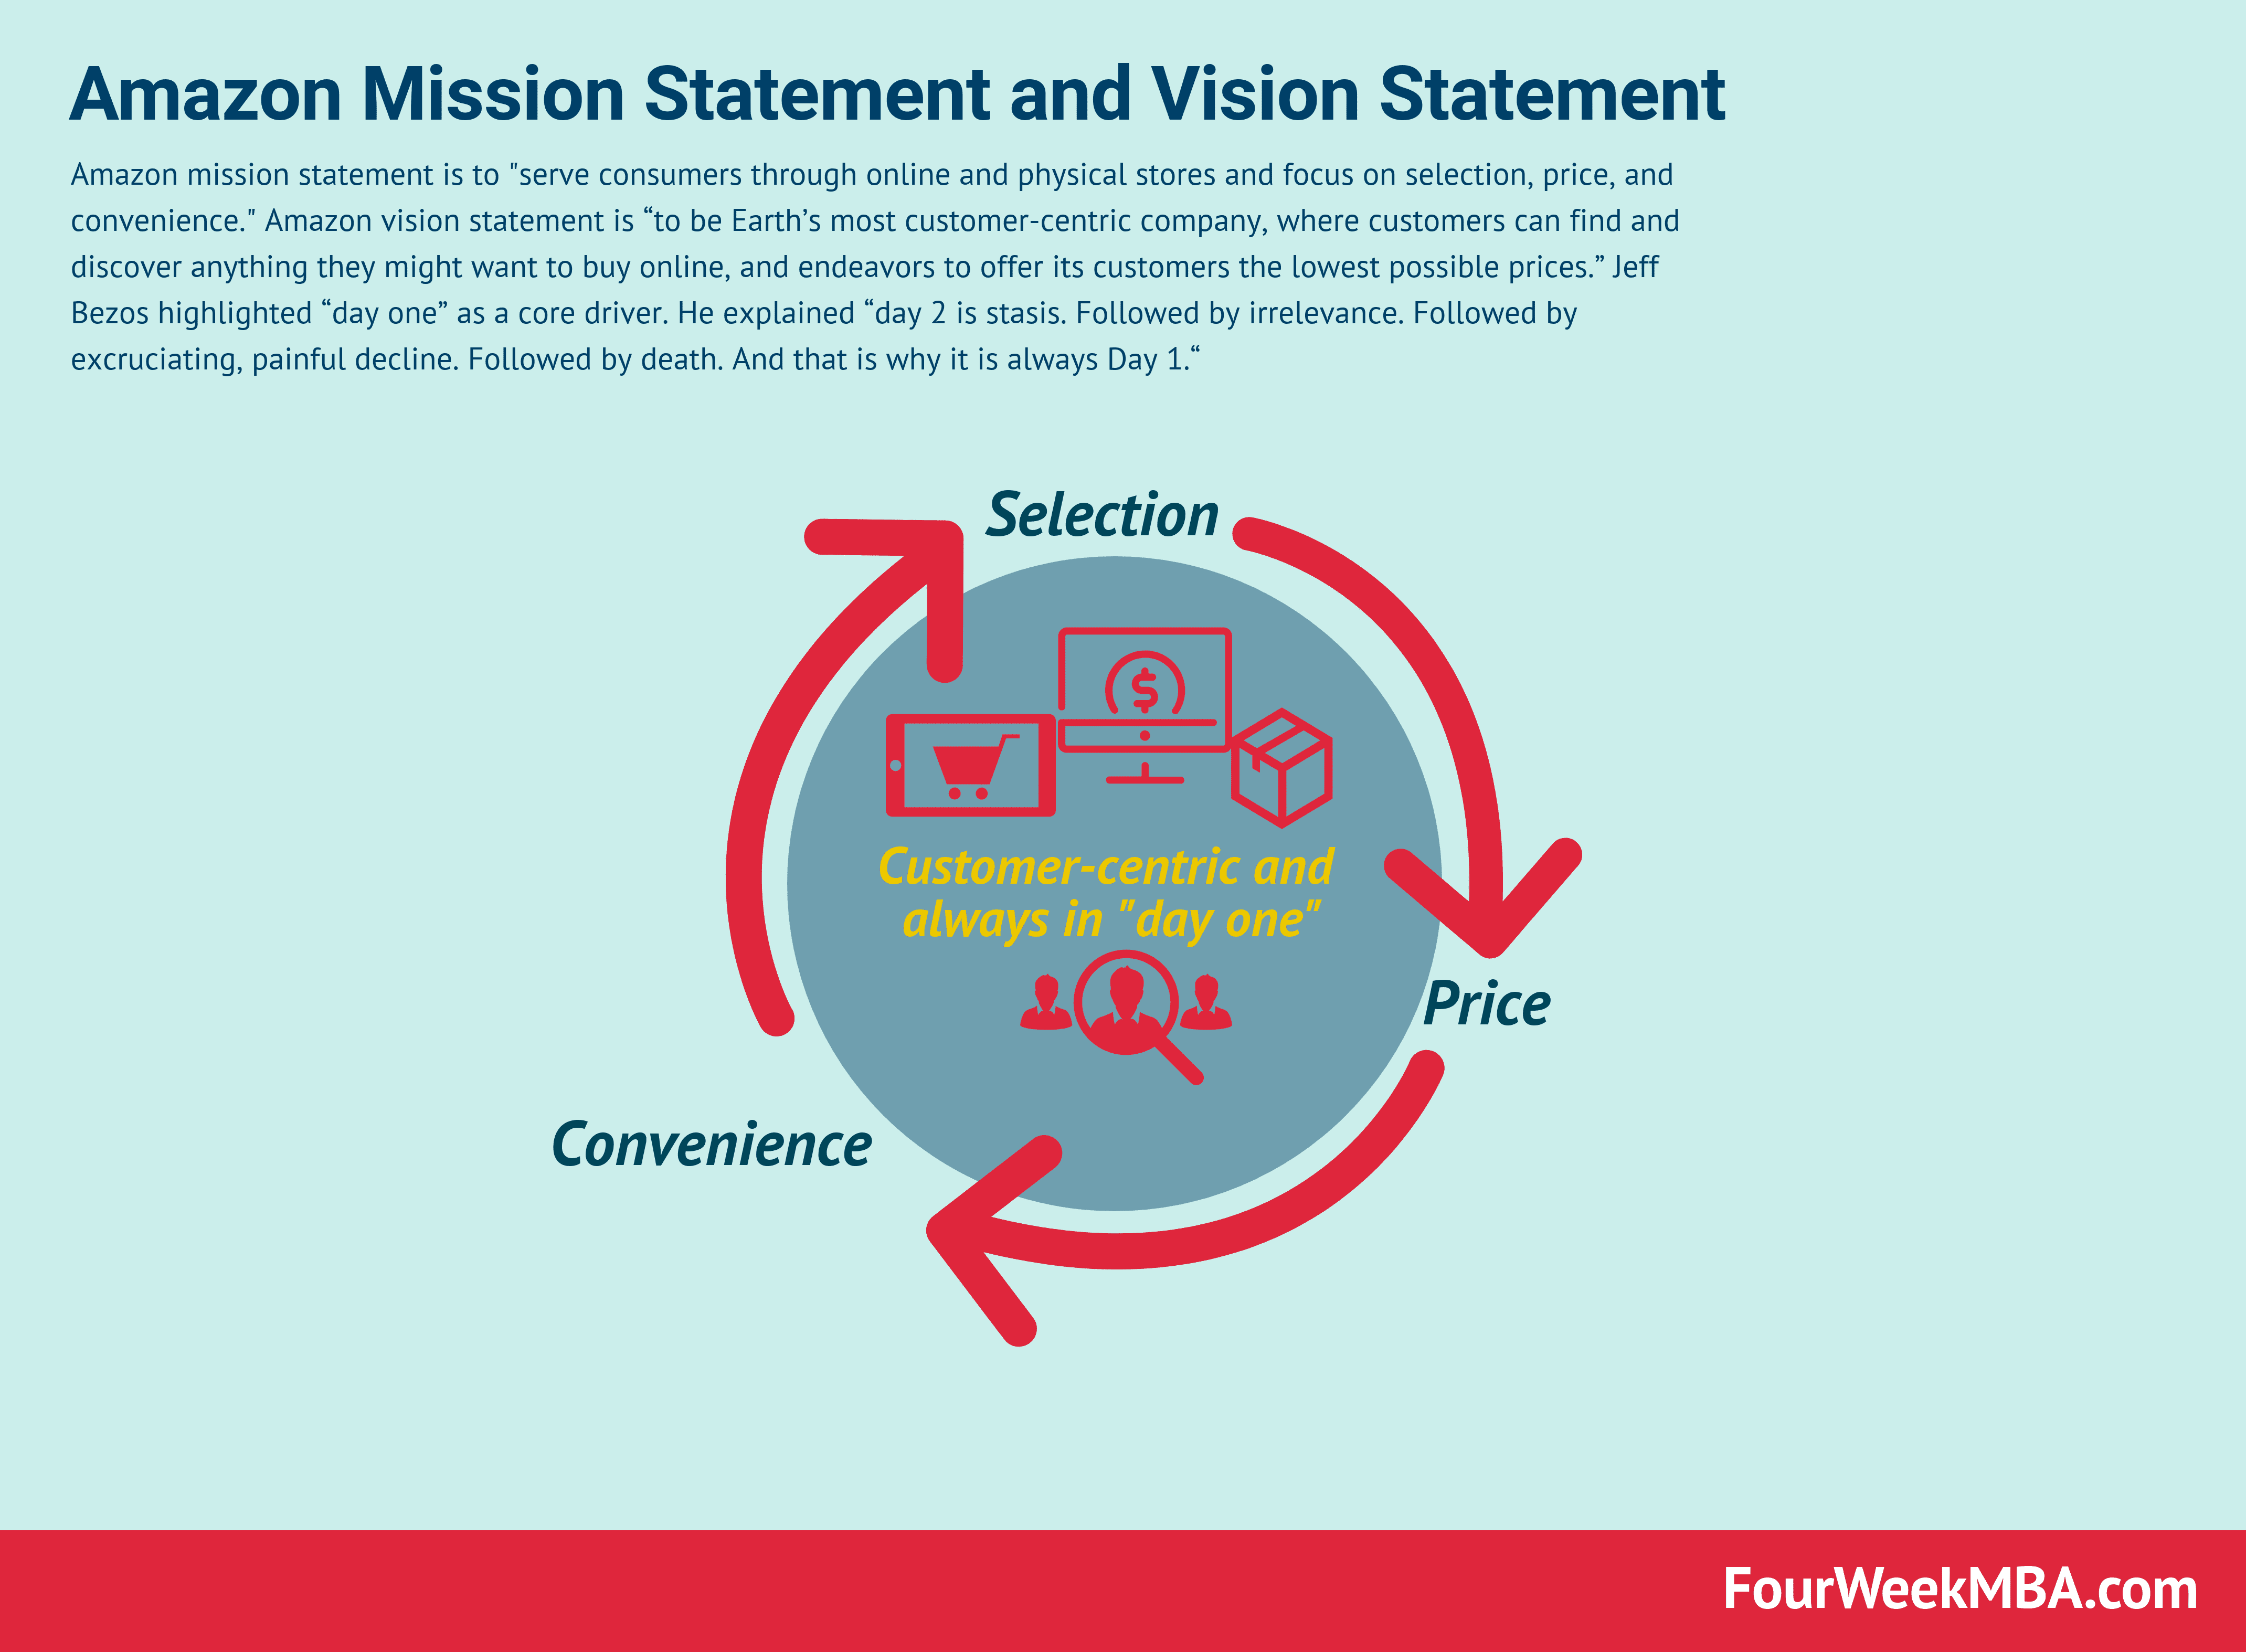 Amazon Mission Statement and Vision Statement In A Nutshell